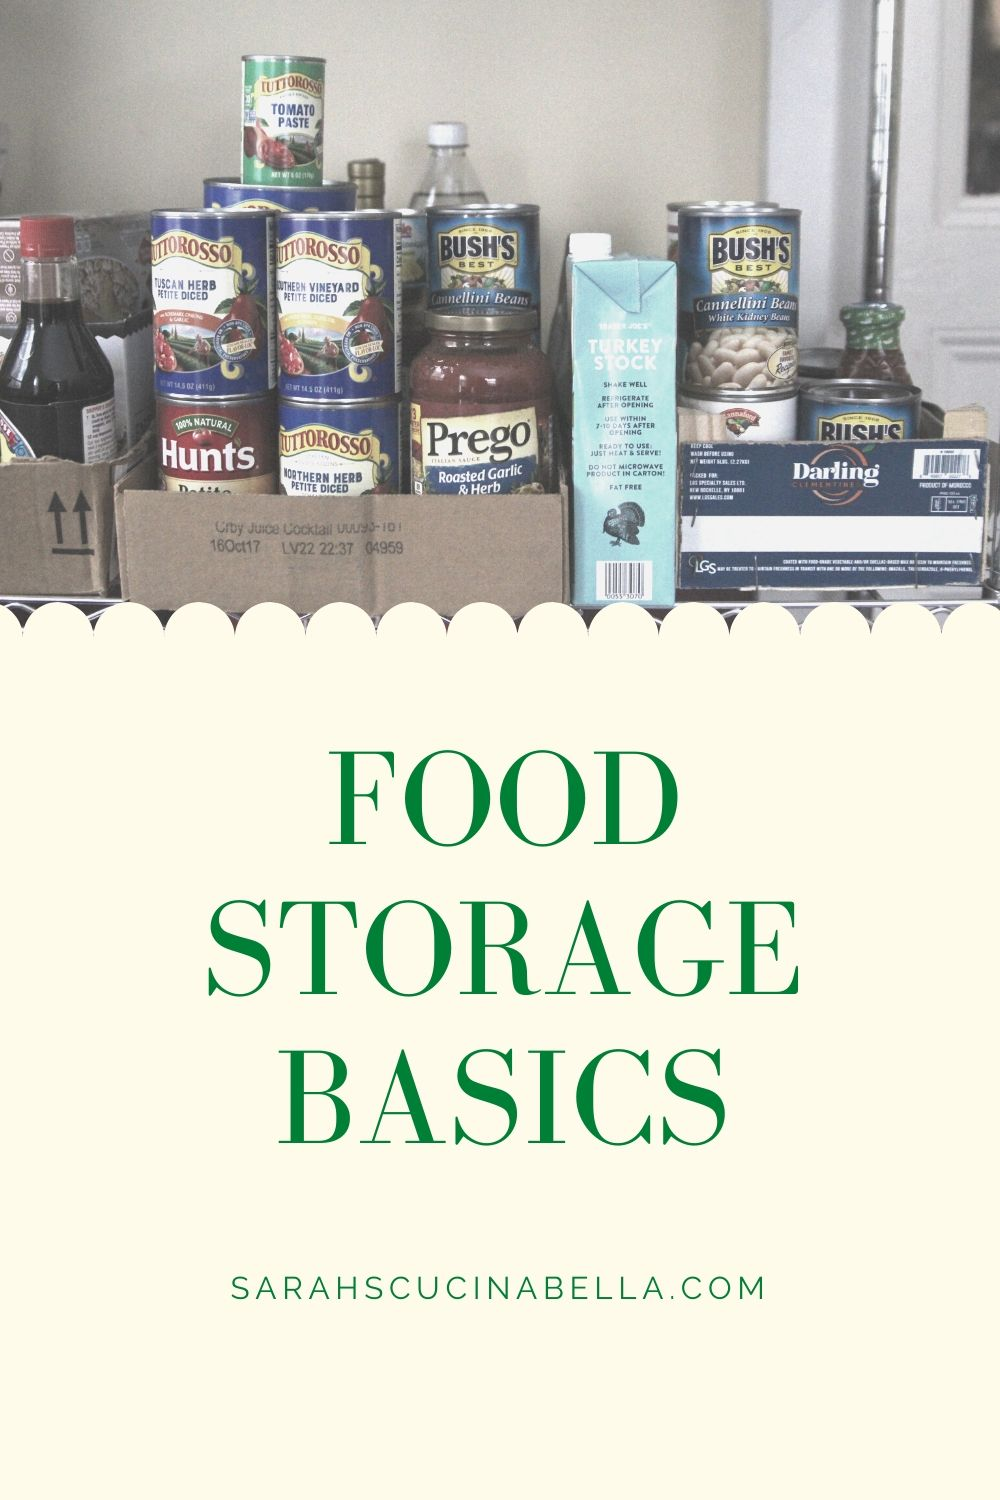 """This image shows stored food — tomatoes, marinara broth, beans, etc — and the words """"Food Storage Basics."""""""